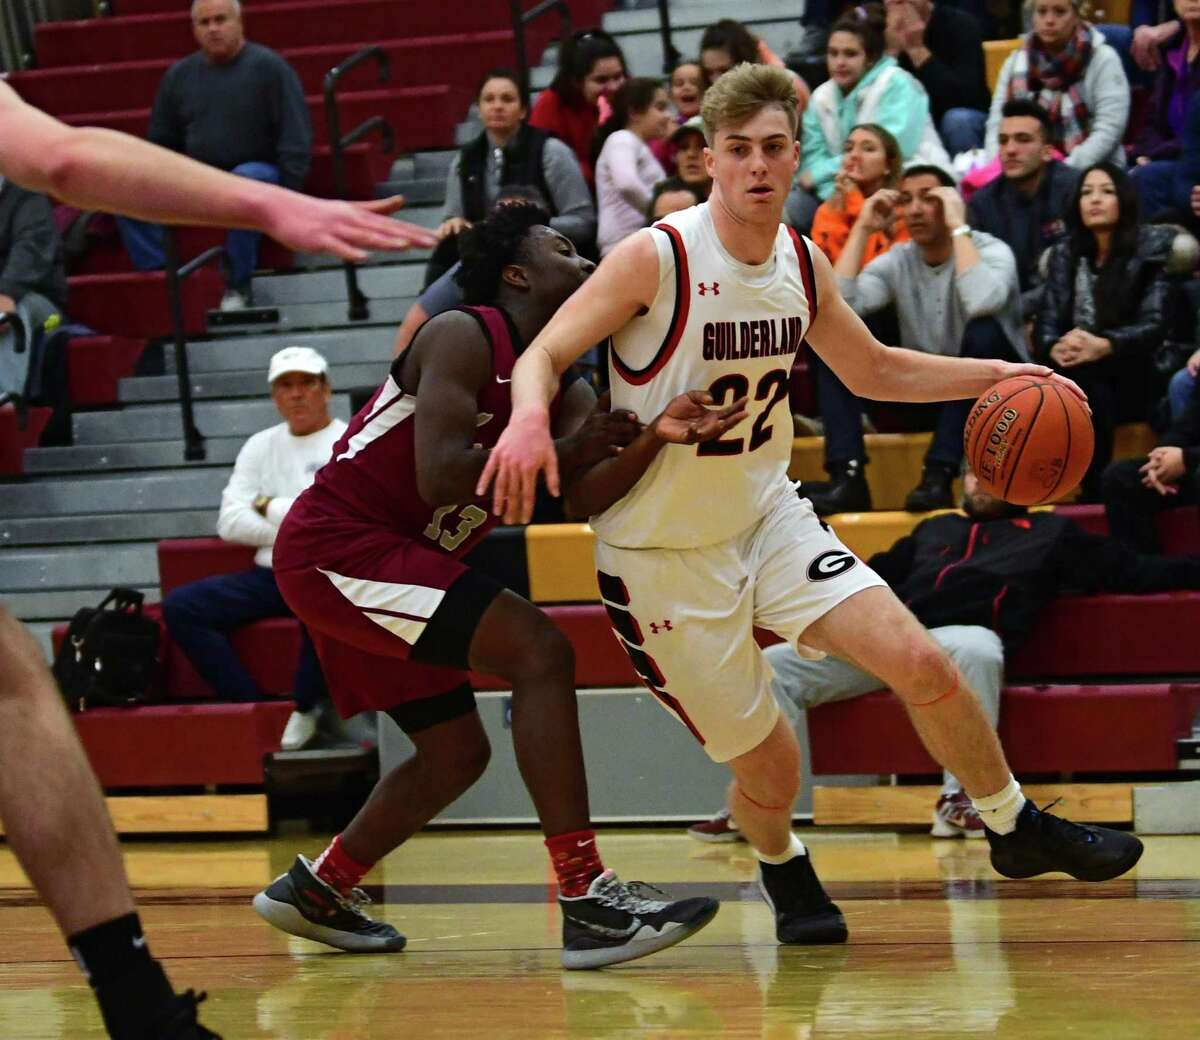 Guilderland's Ryan Teaney drives to the hoop against Watervliet's Marcel Robinson during a basketball game on Tuesday, Dec. 31, 2019 in Colonie, N.Y. (Lori Van Buren/Times Union)